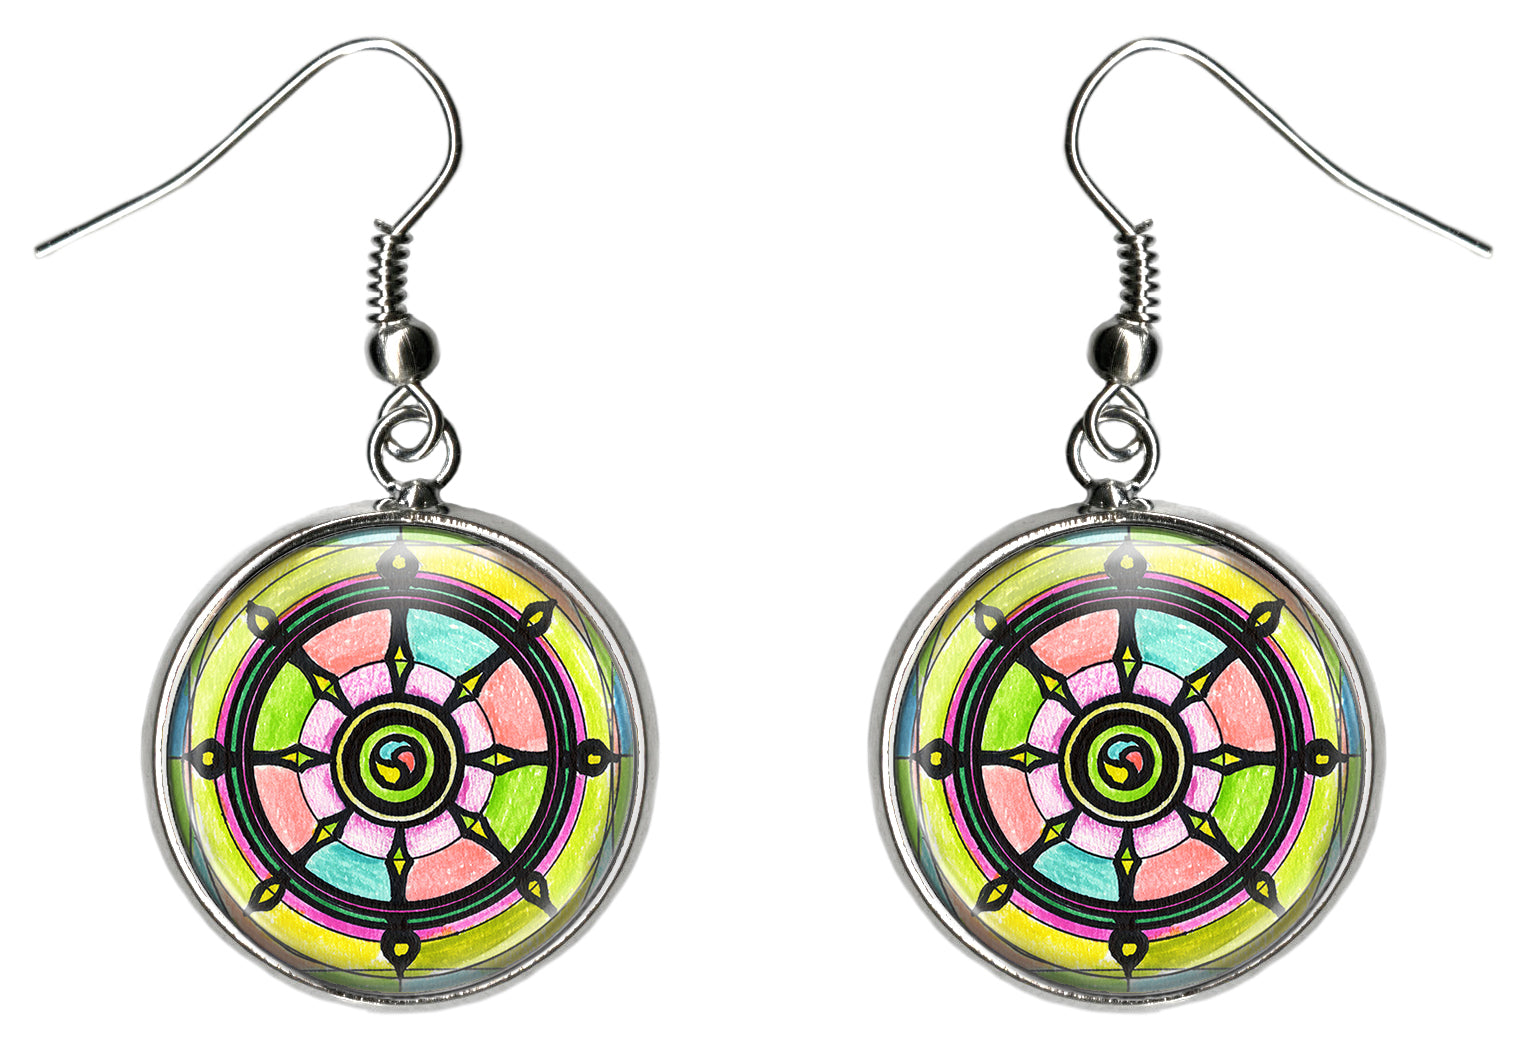 Dharma Wheel of Karma Silver Surgical Stainless Steel Hypoallergenic Earrings